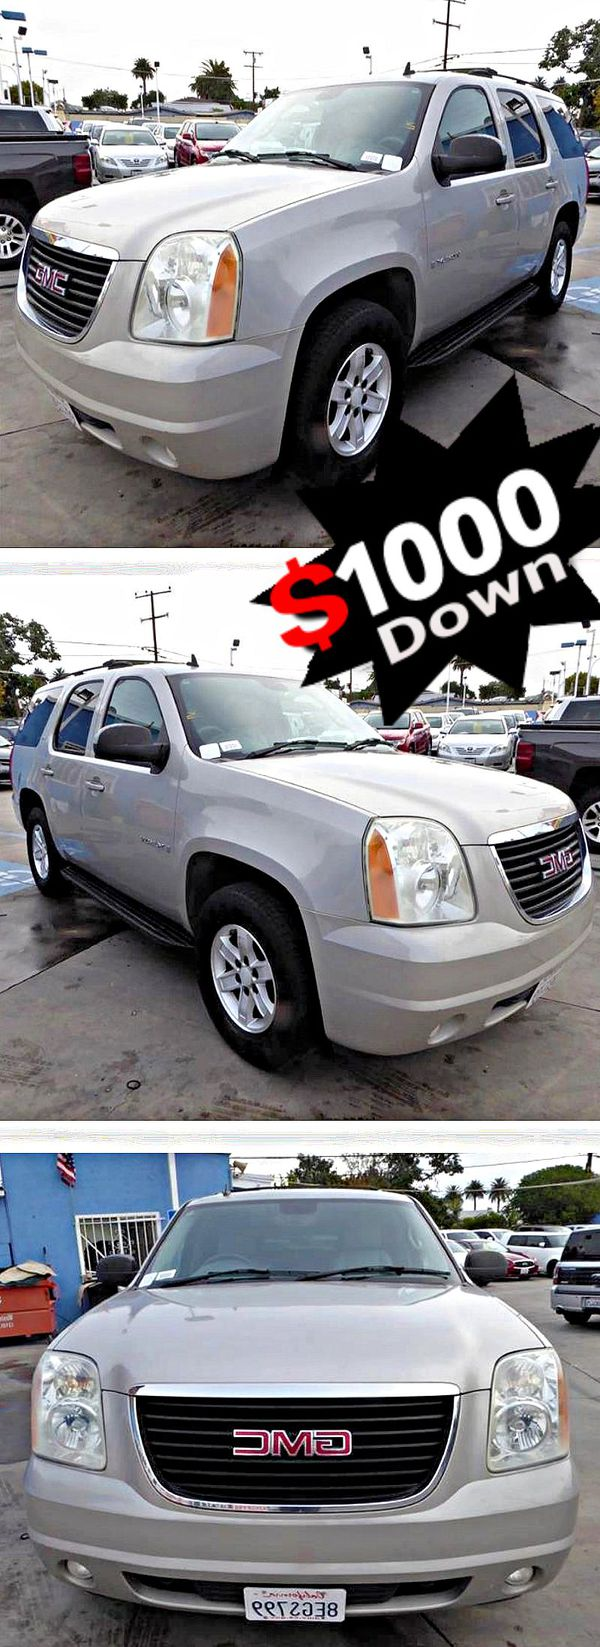 2007 Gmc Yukon Sle1 2wd For Sale In South Gate Ca Offerup